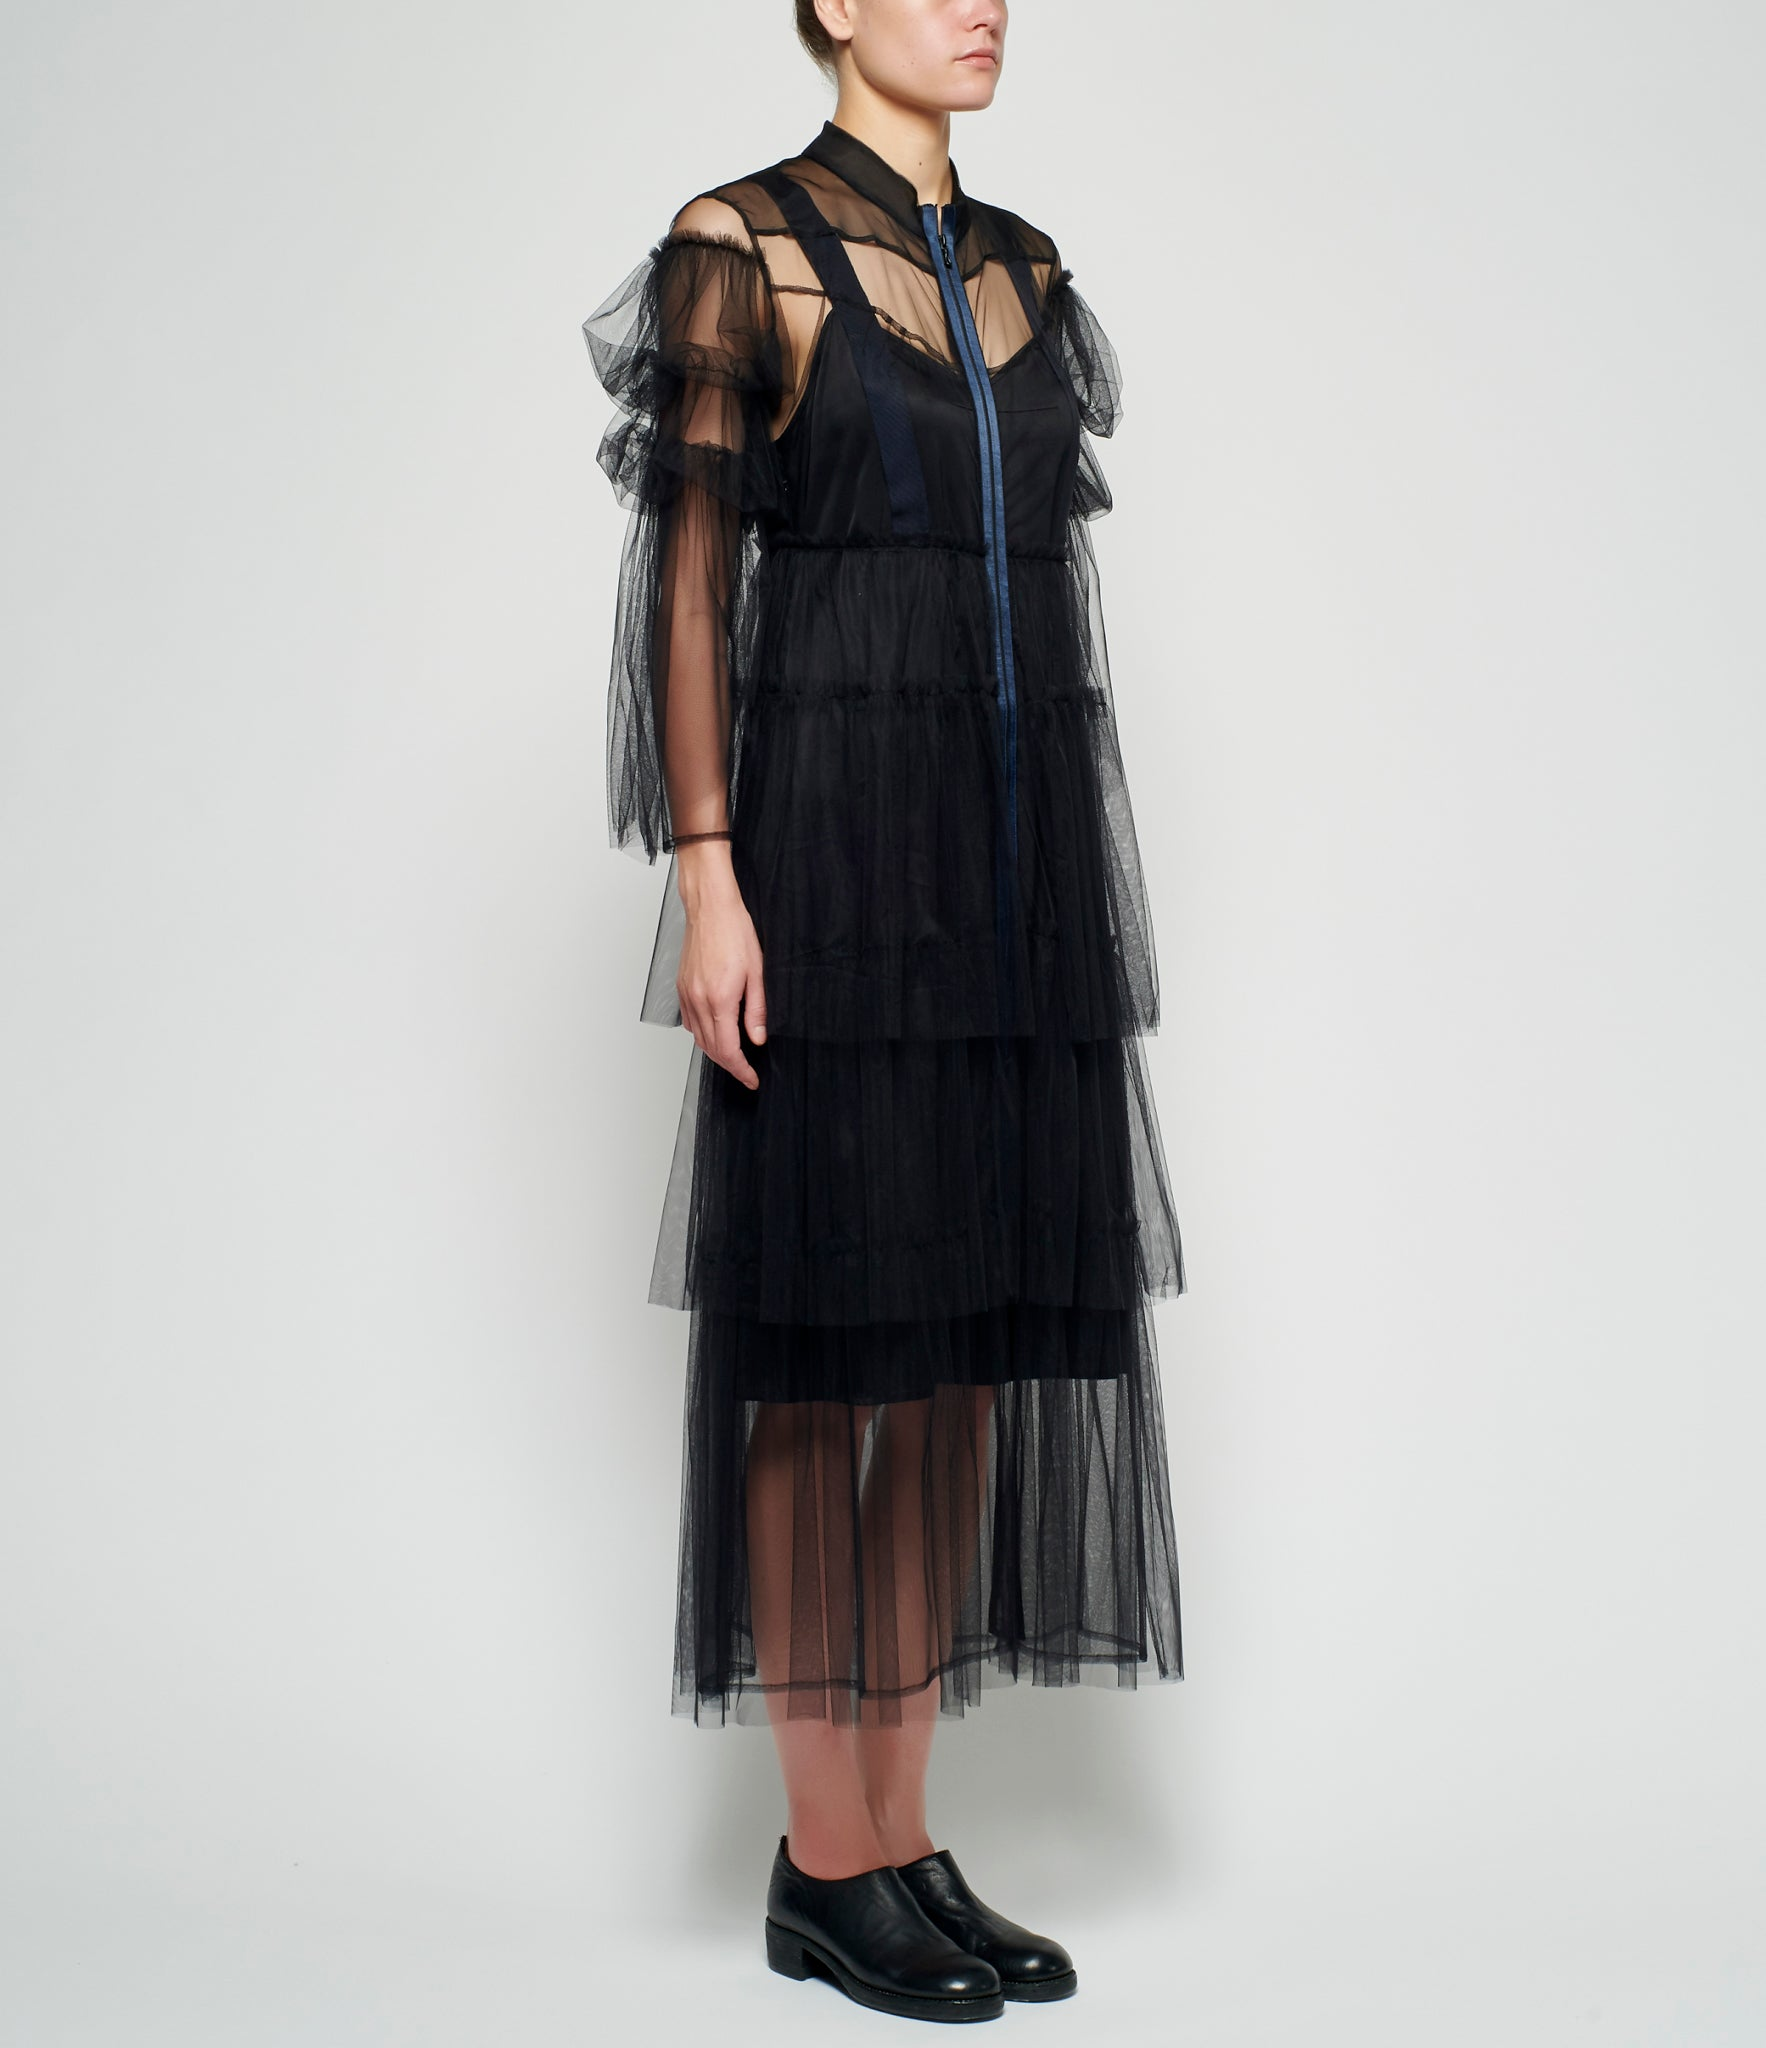 Quetsche Shuyue's Tulle Dress